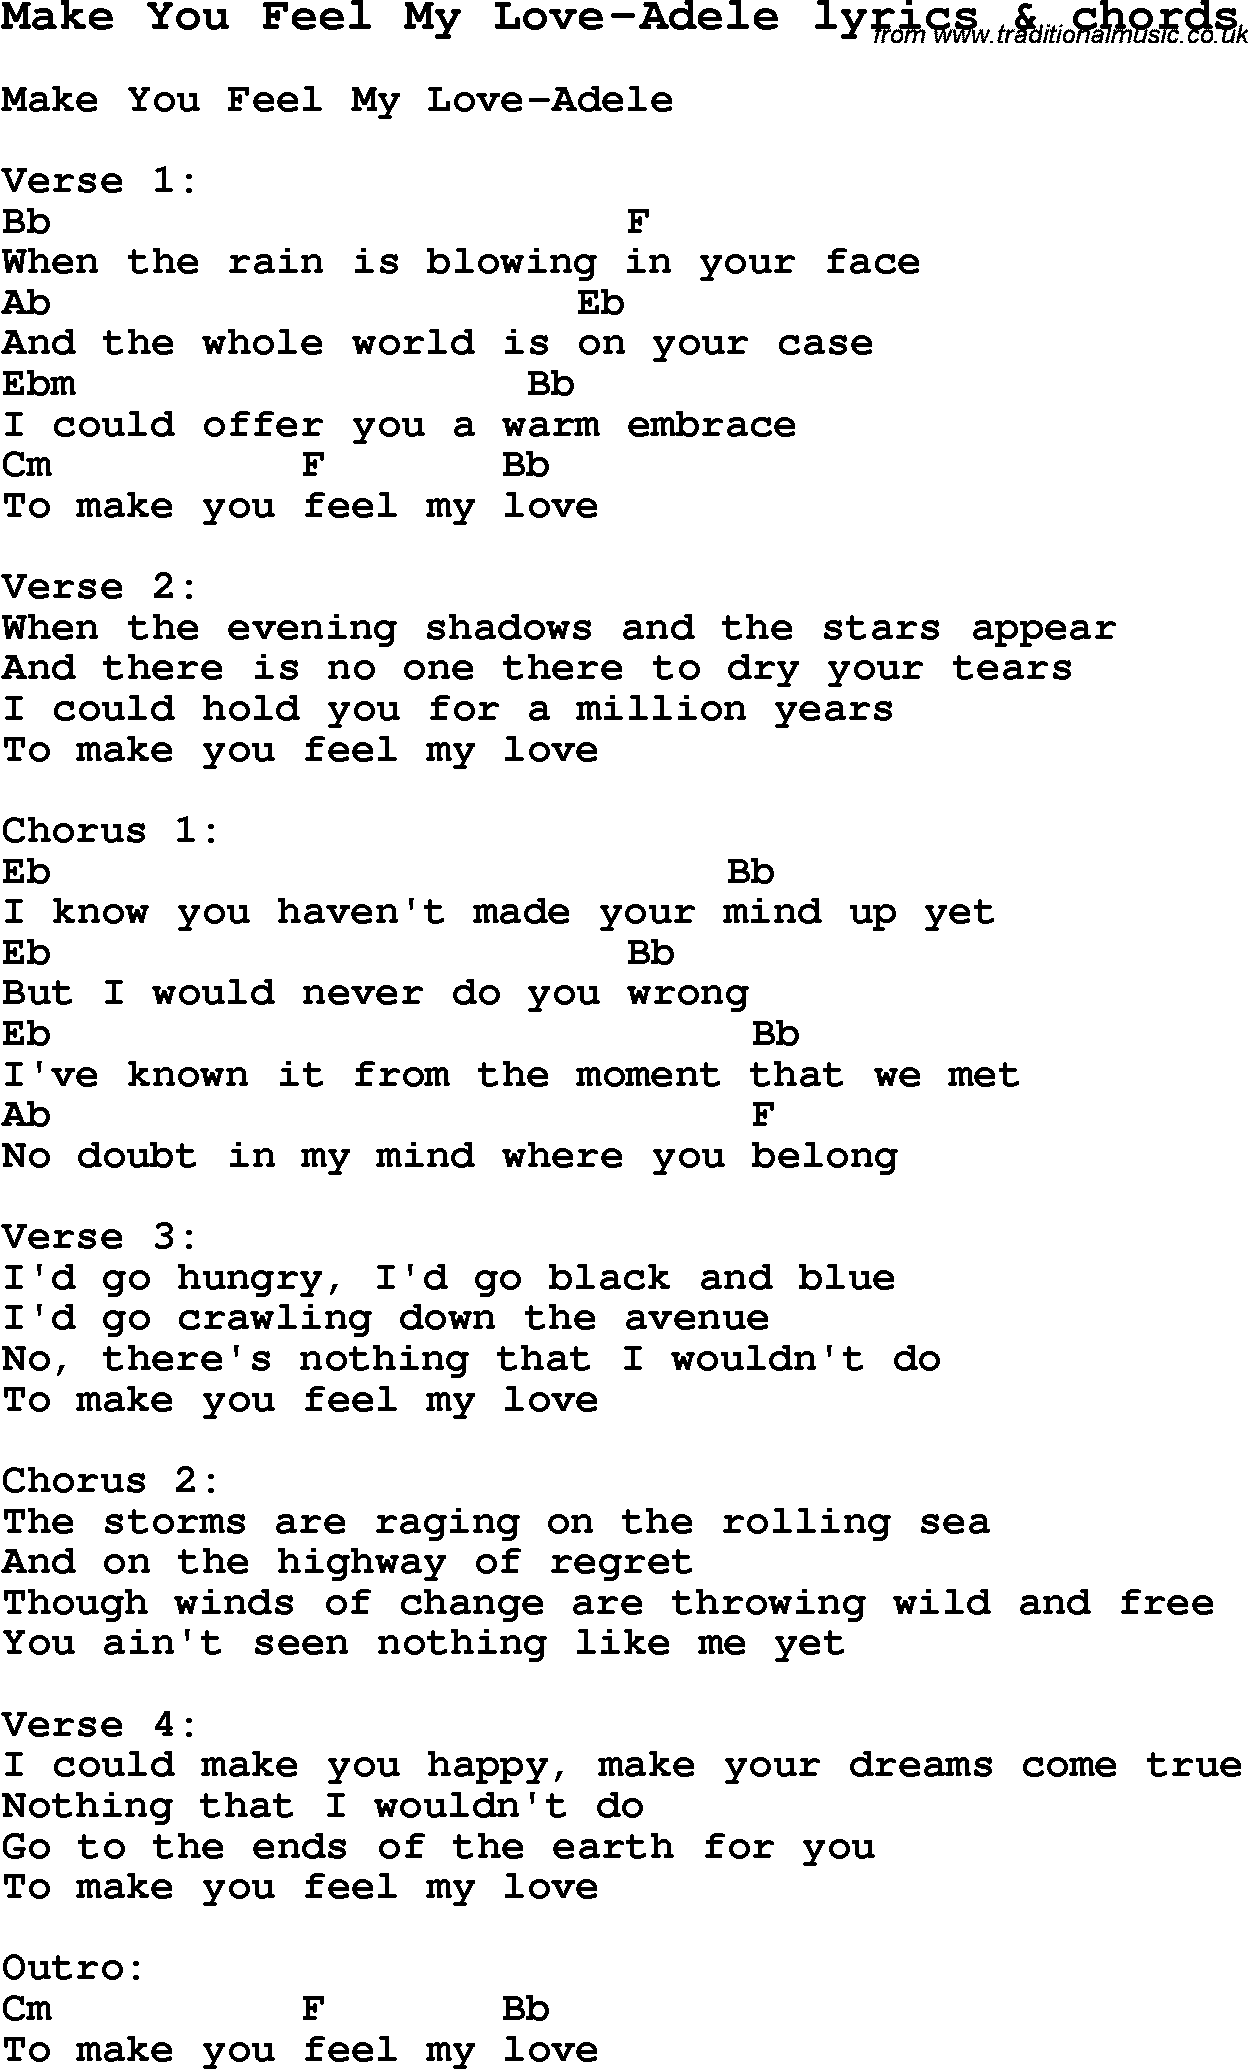 Love song lyrics formake you feel my love adele with chords love song lyrics formake you feel my love adele garth brooks with chords hexwebz Choice Image